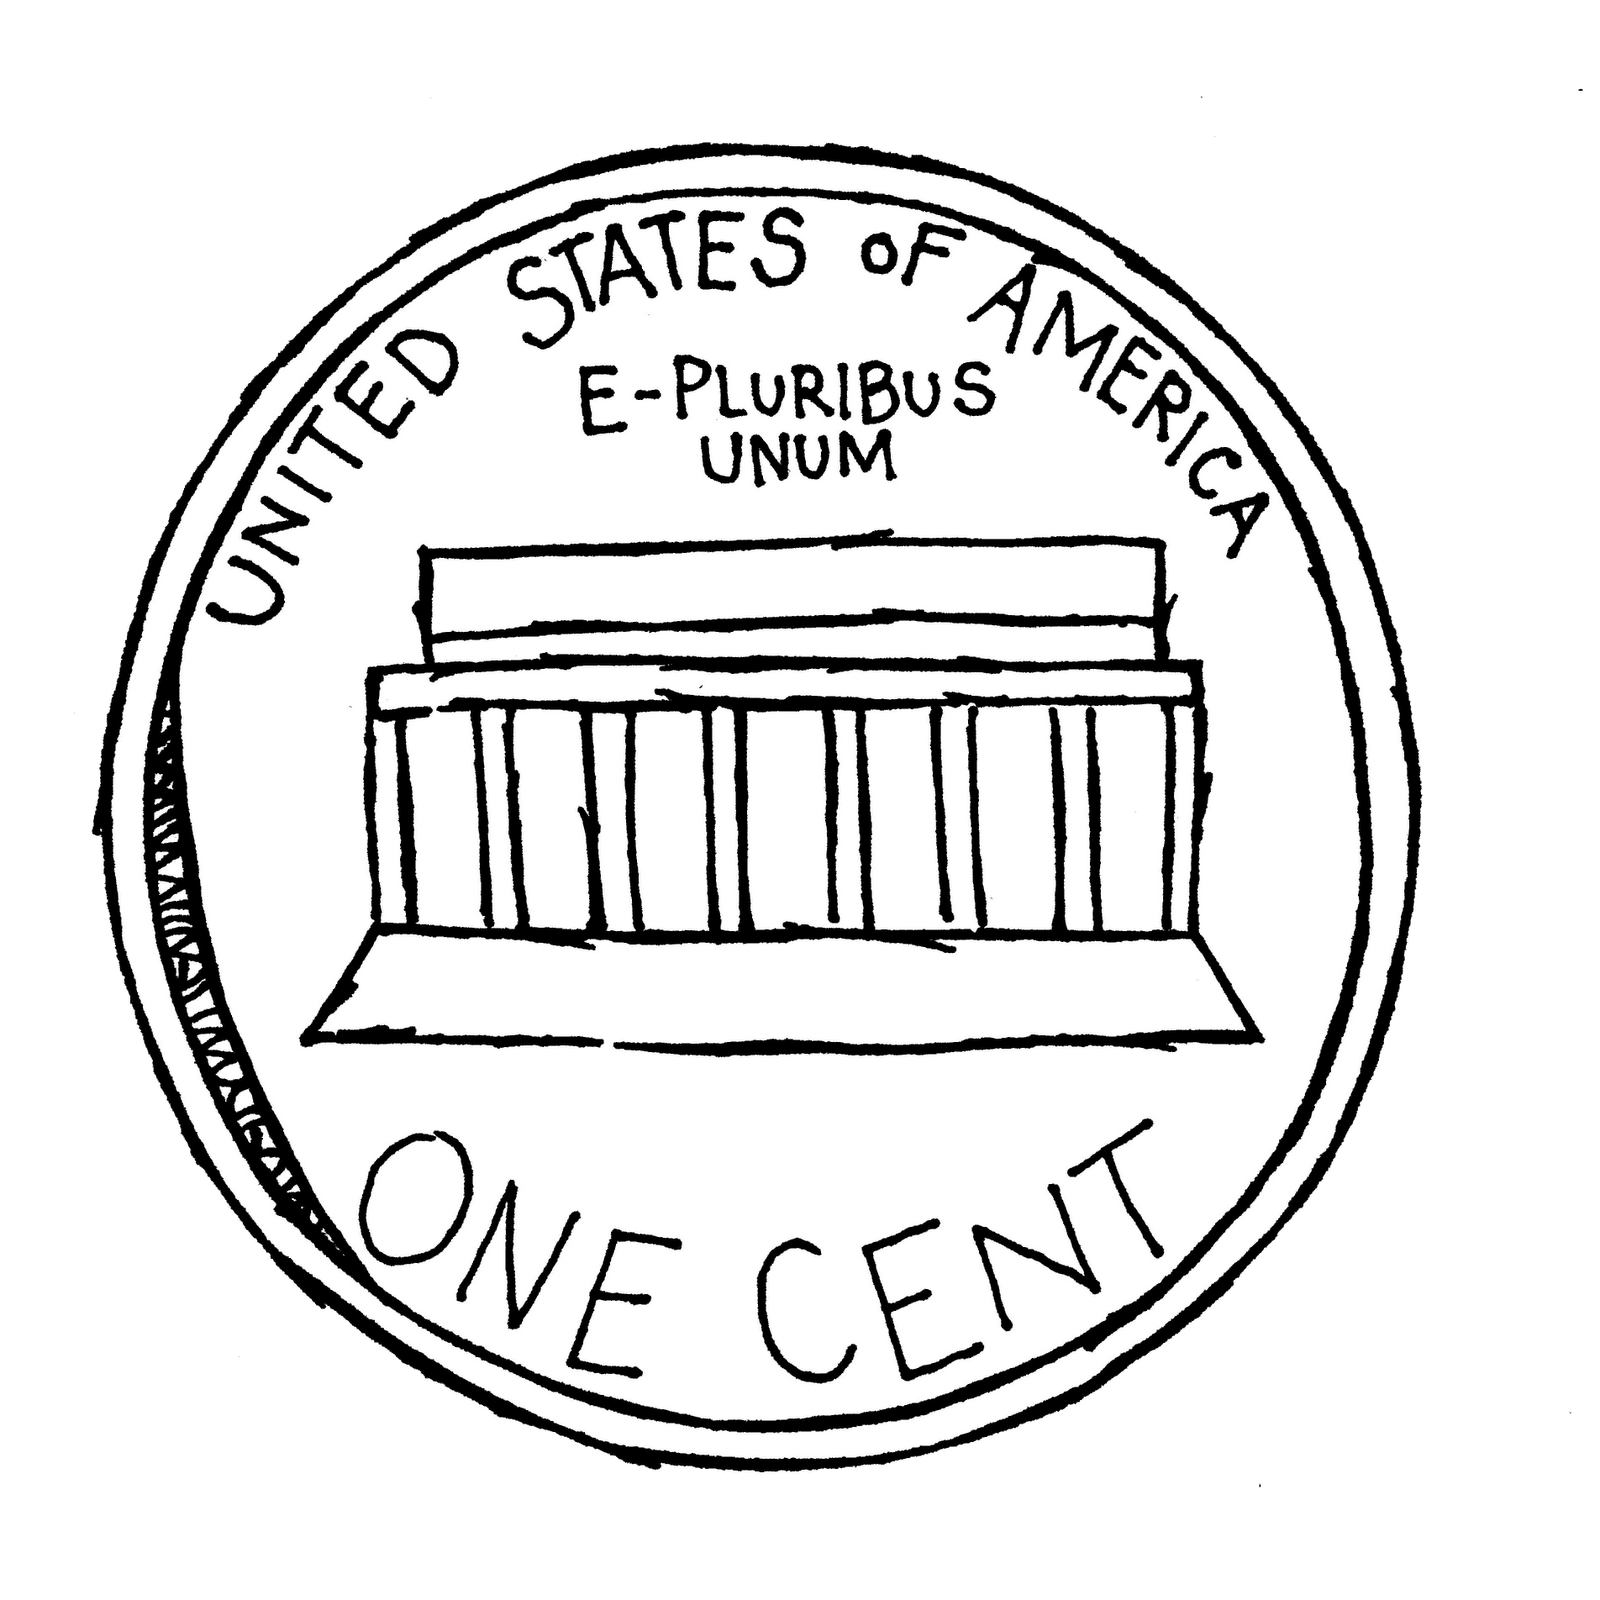 Penny clip art coins clipart image 2